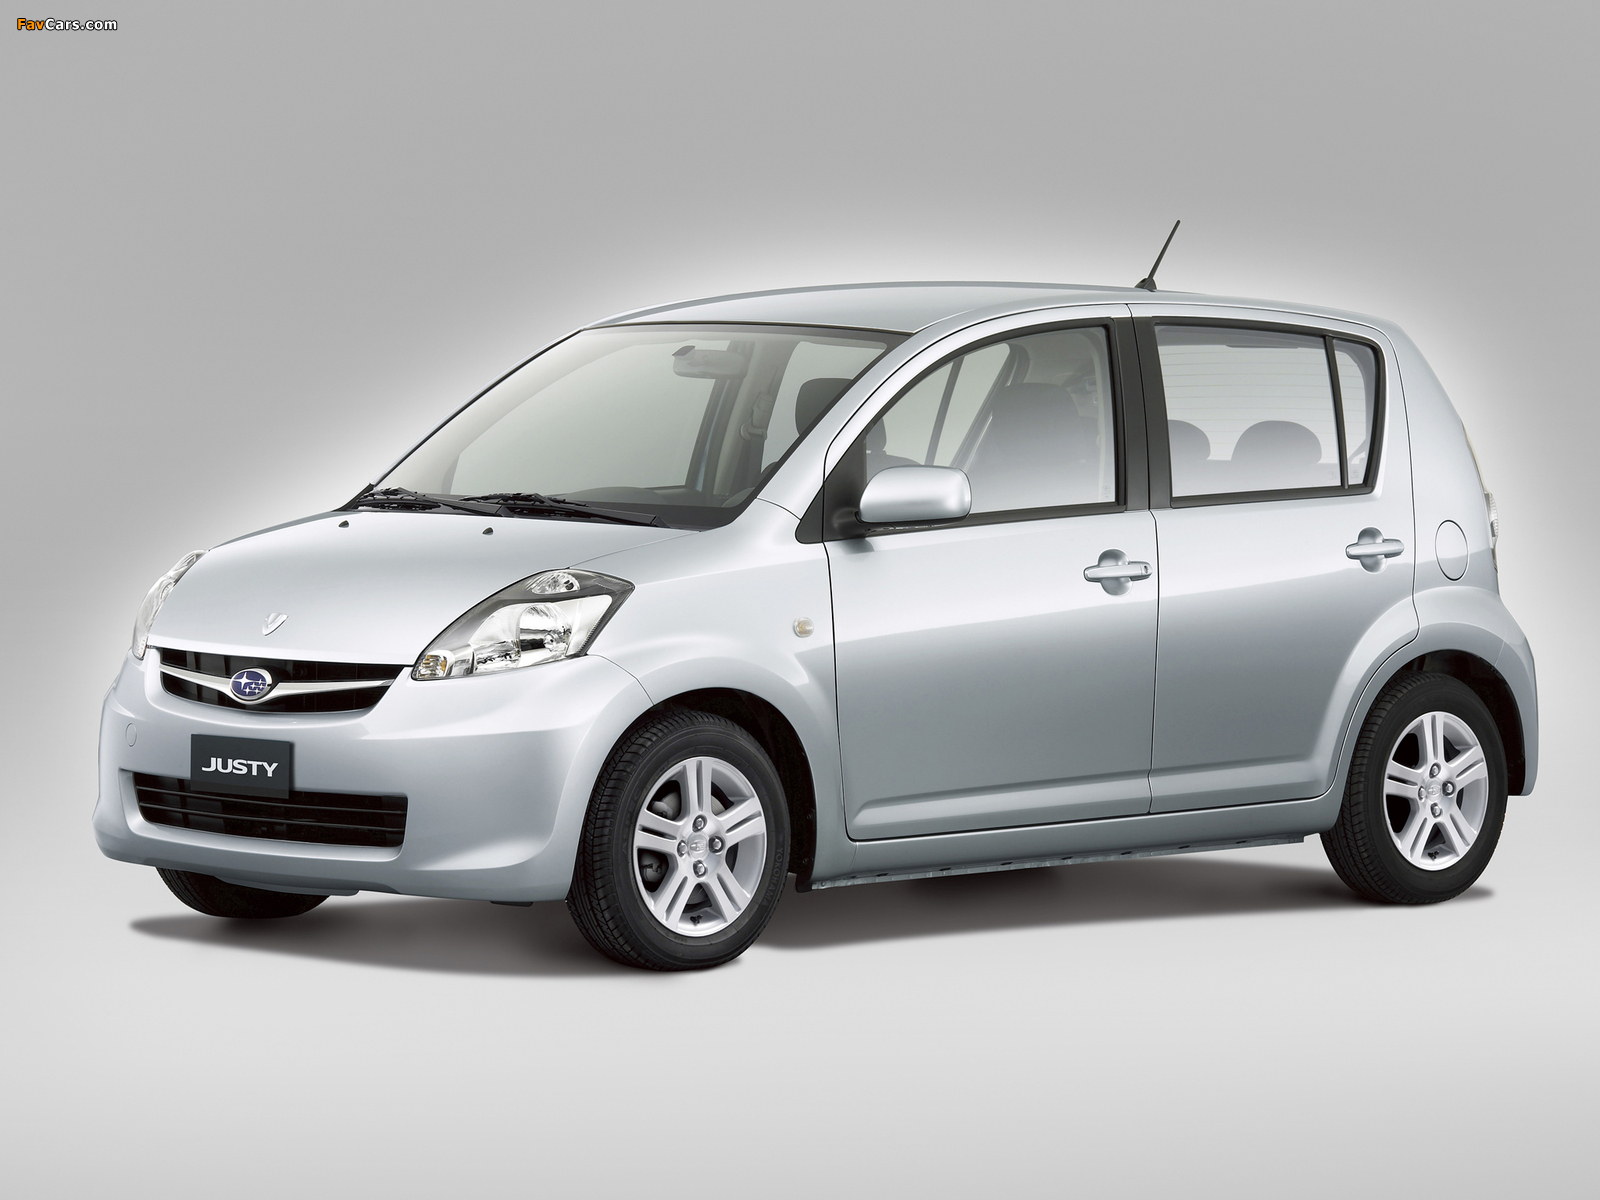 Subaru Justy 2007 pictures (1600 x 1200)